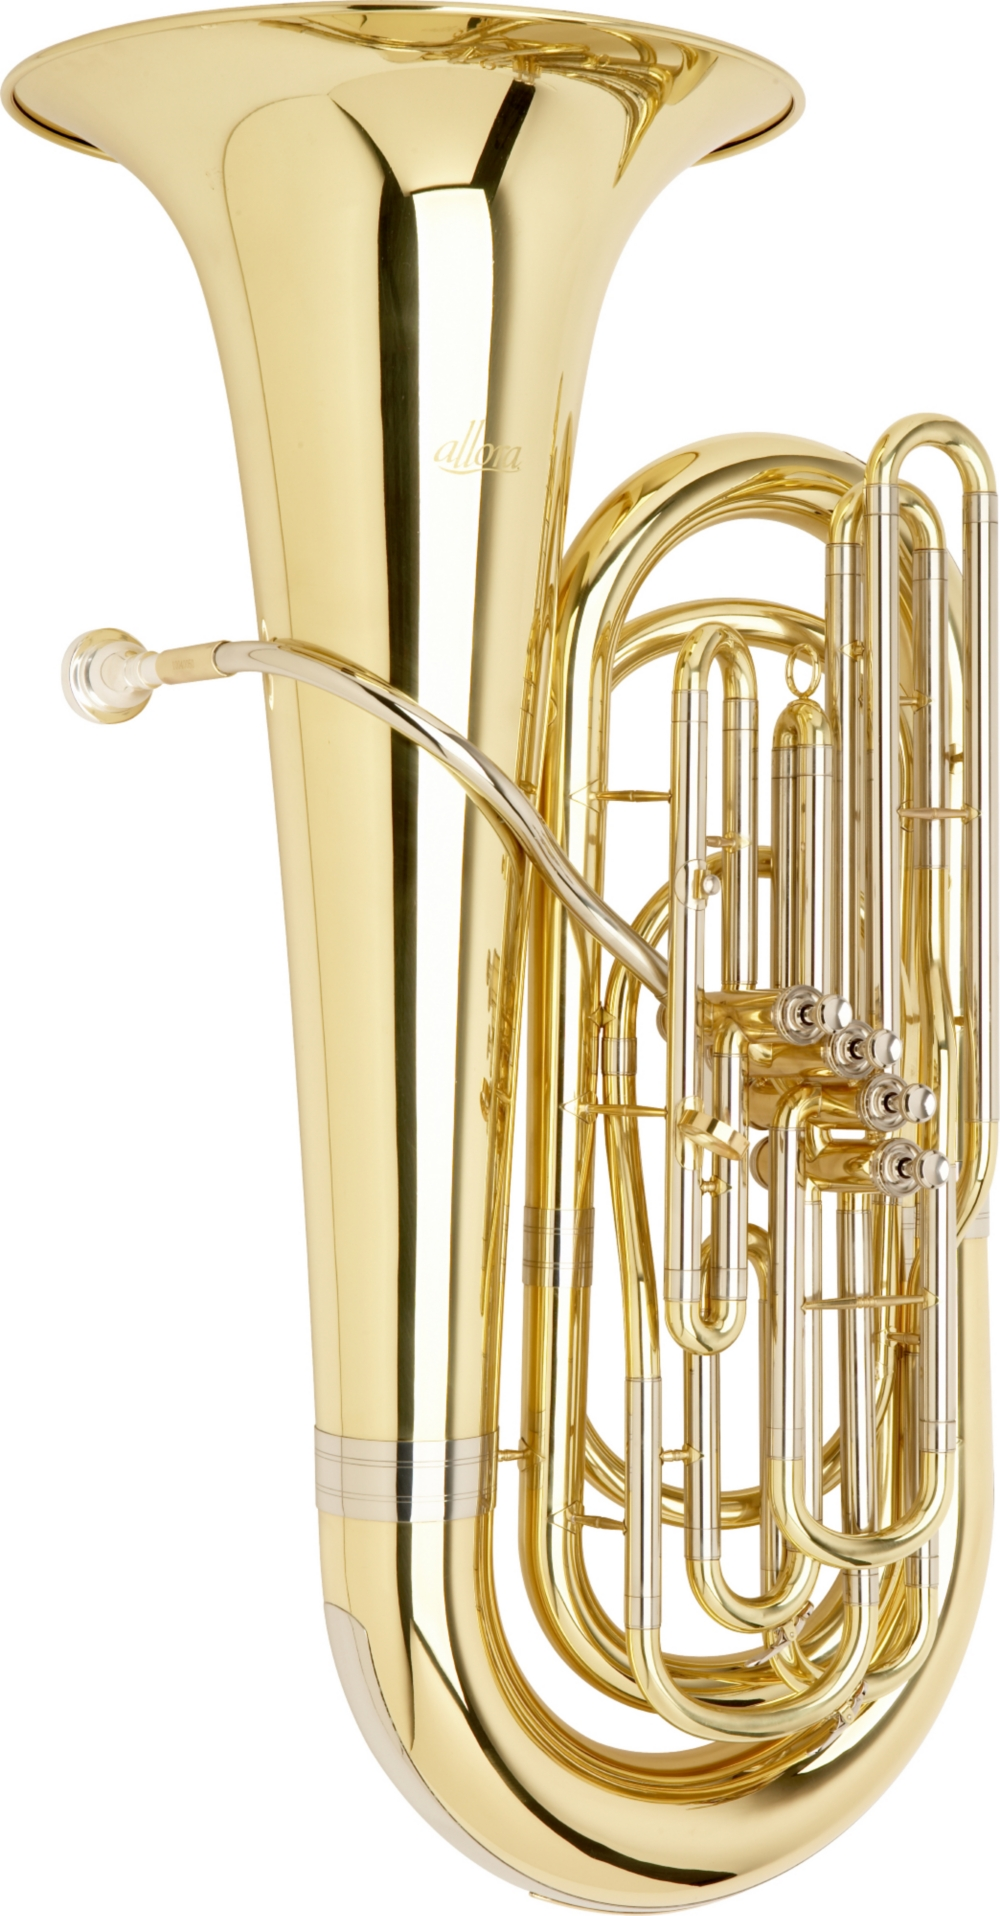 Allora AATU-105P Series 4-Piston Valve 3 4 BBb Tuba by Allora